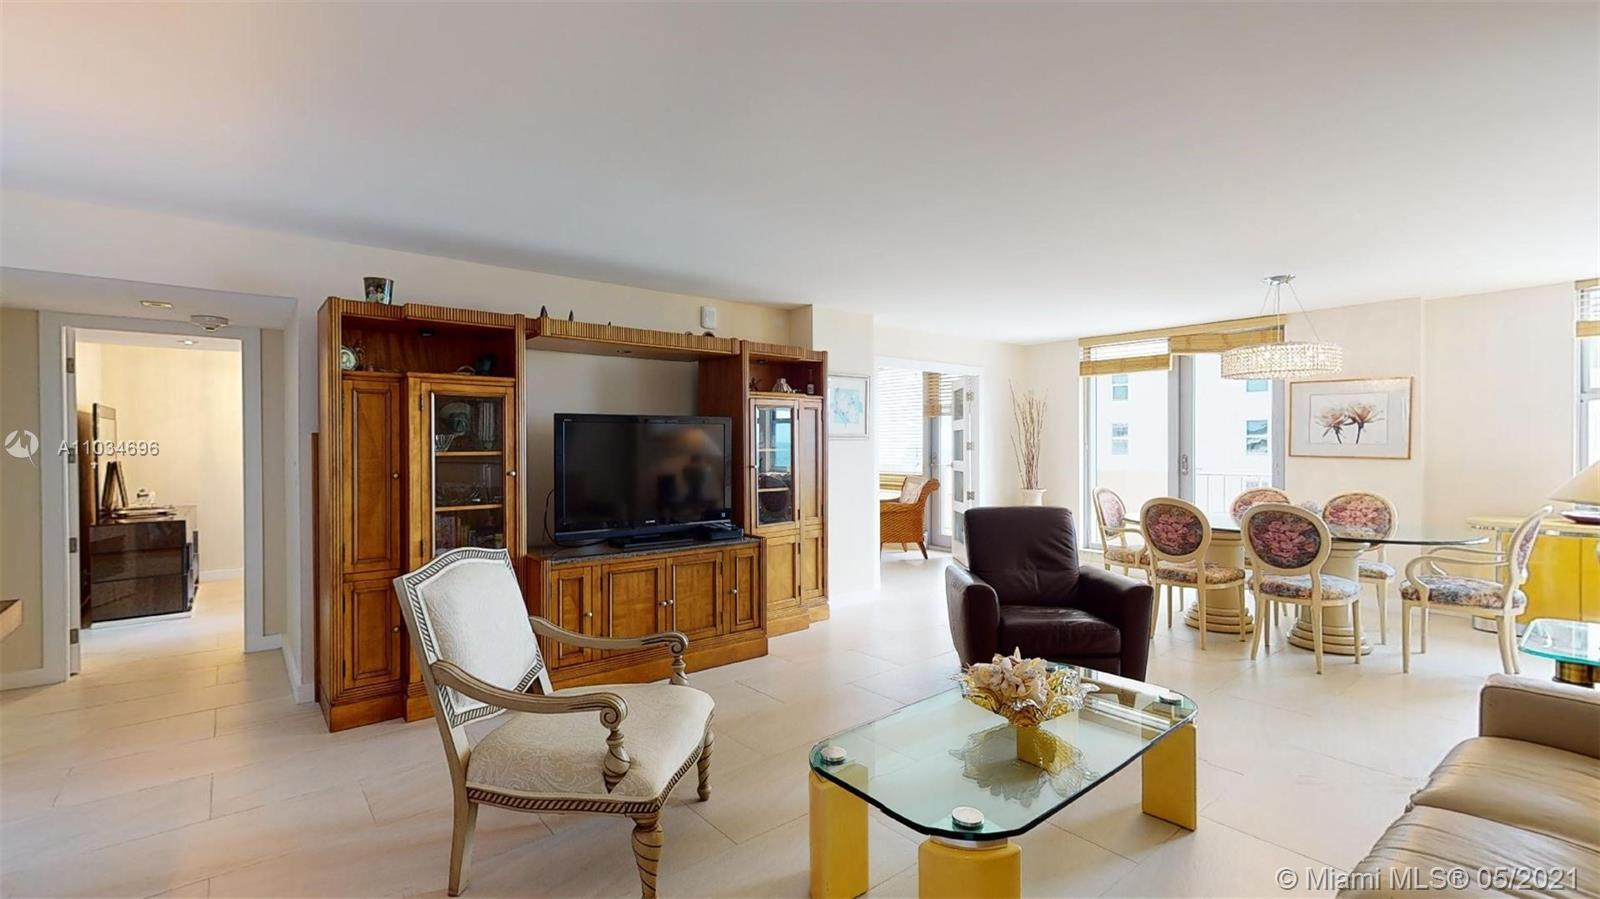 Beautiful converted 2/2 overlooking the Beautiful Sandy Beaches of Hallandale, direct Ocean and Intr